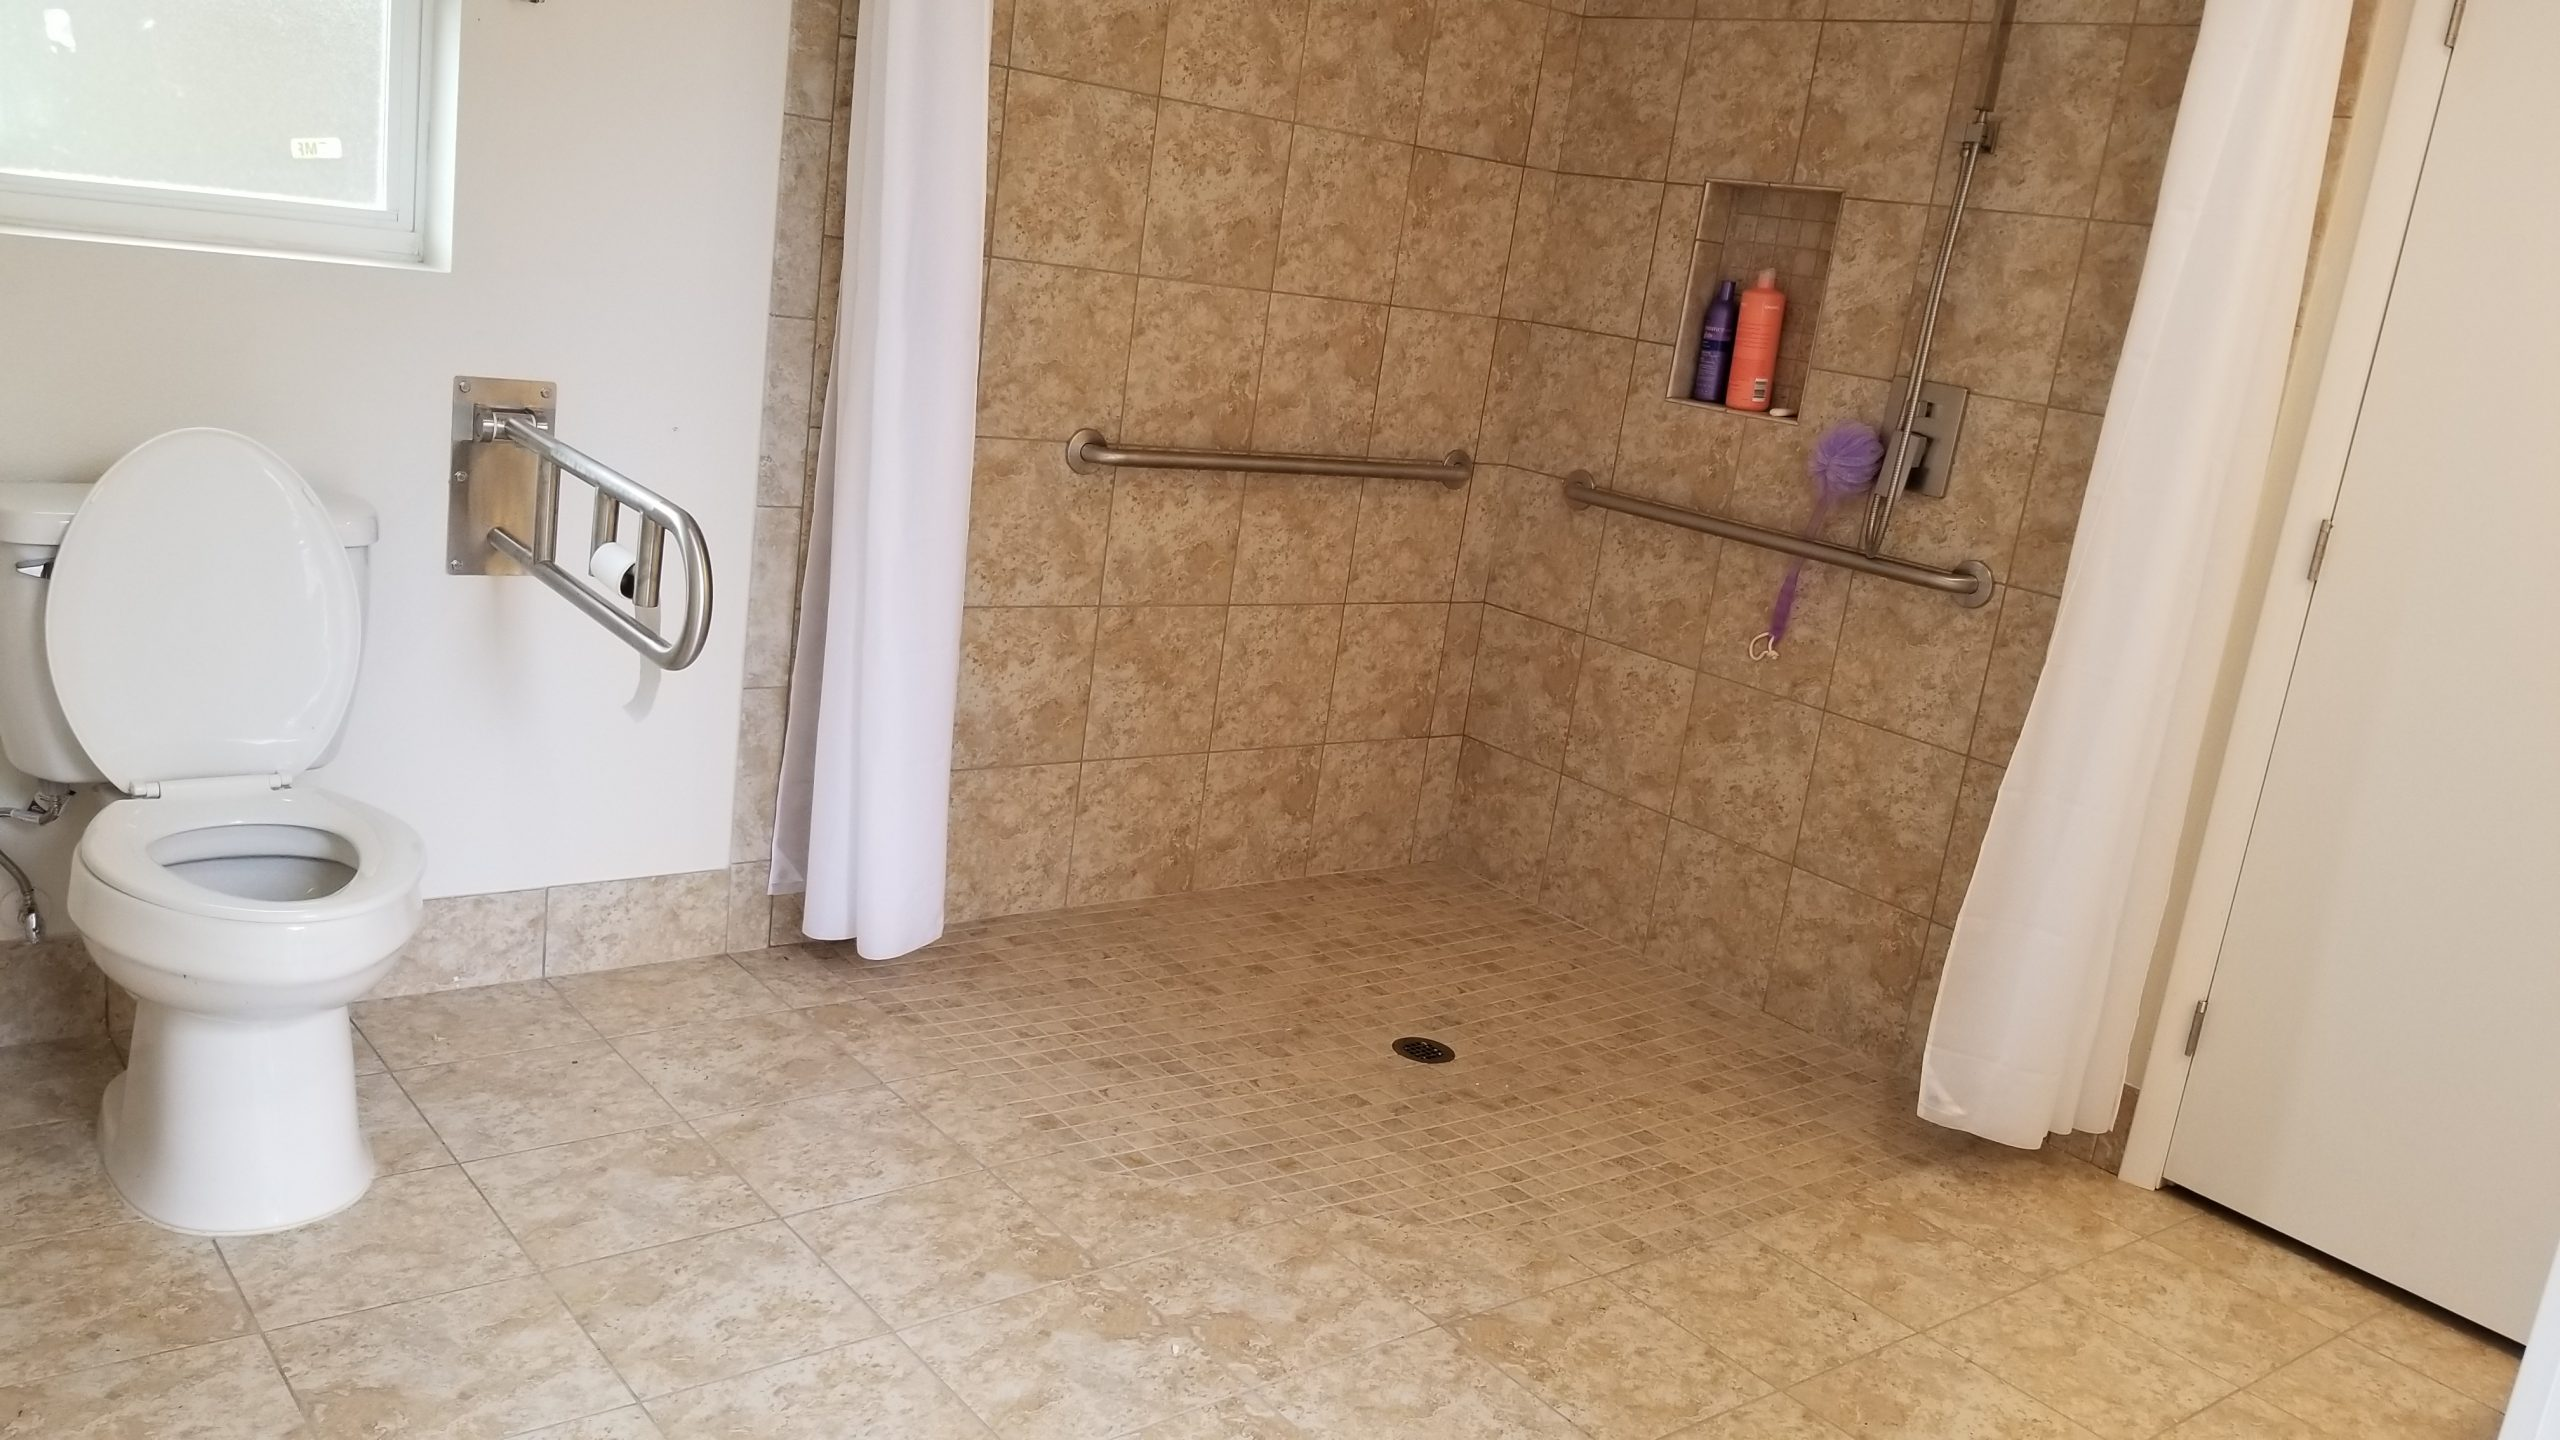 A bathroom with a grab bar installed in the shower